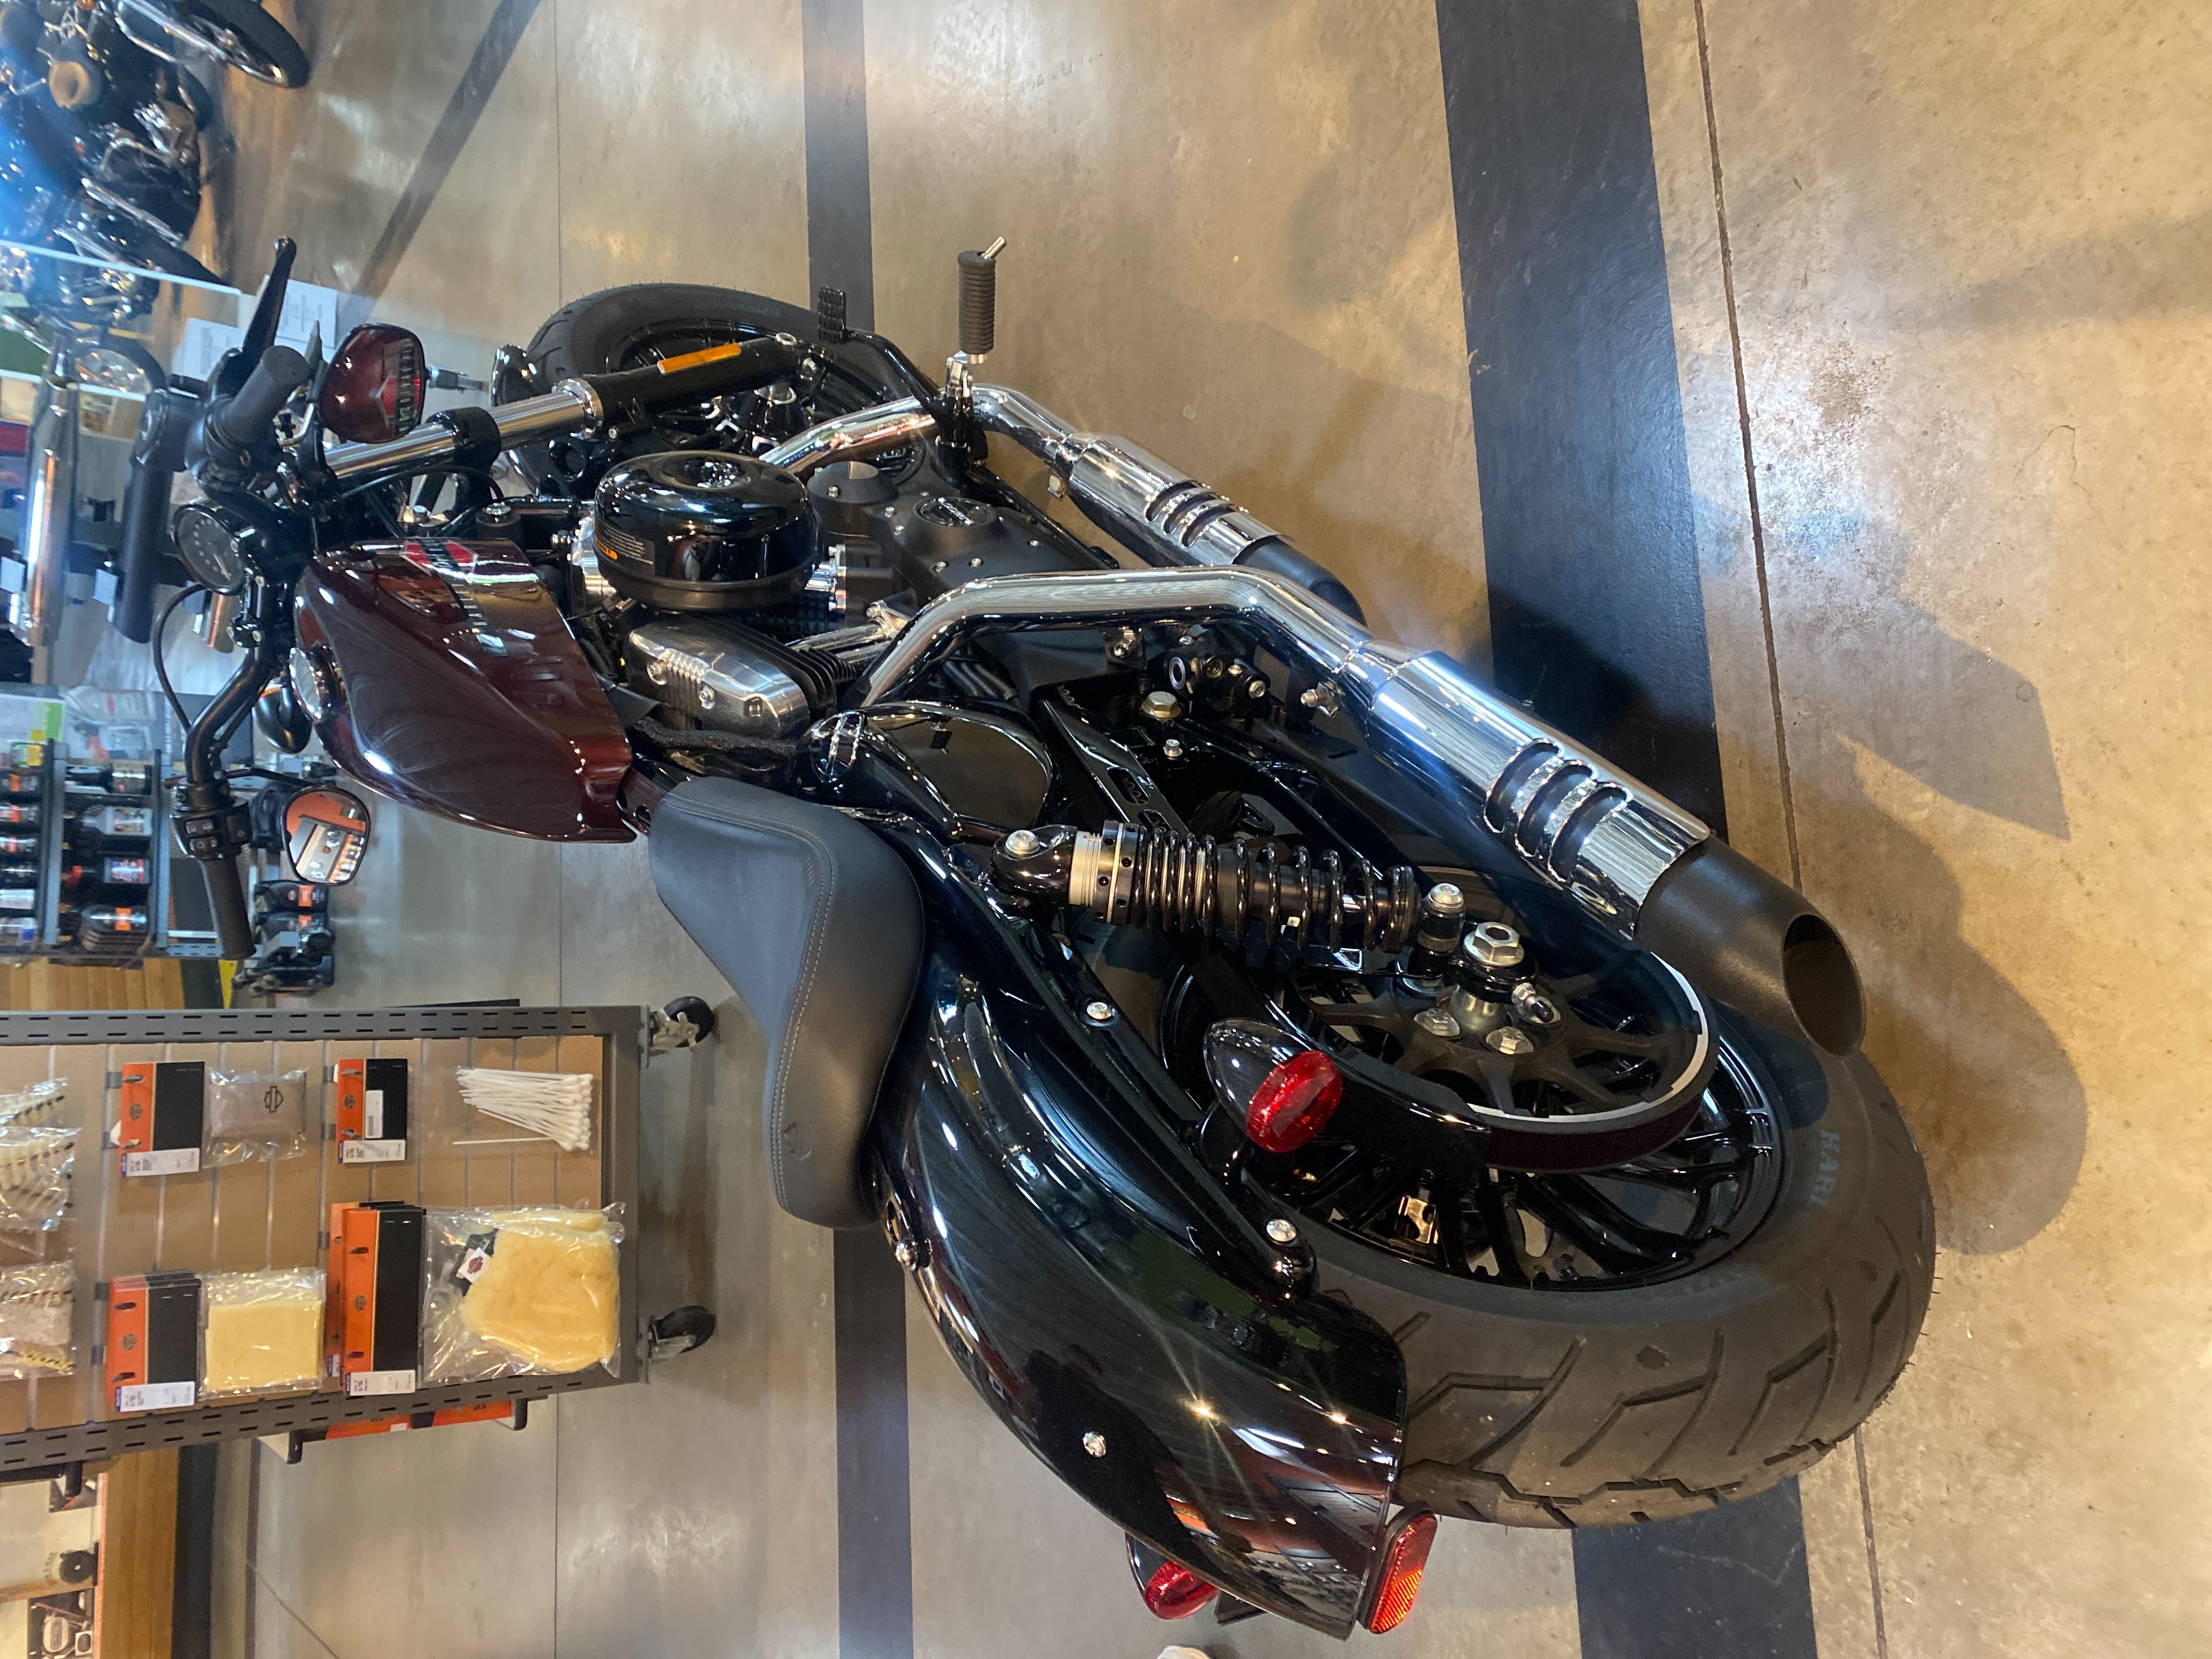 2021 Harley-Davidson Street XL 1200X Forty-Eight at Outpost Harley-Davidson